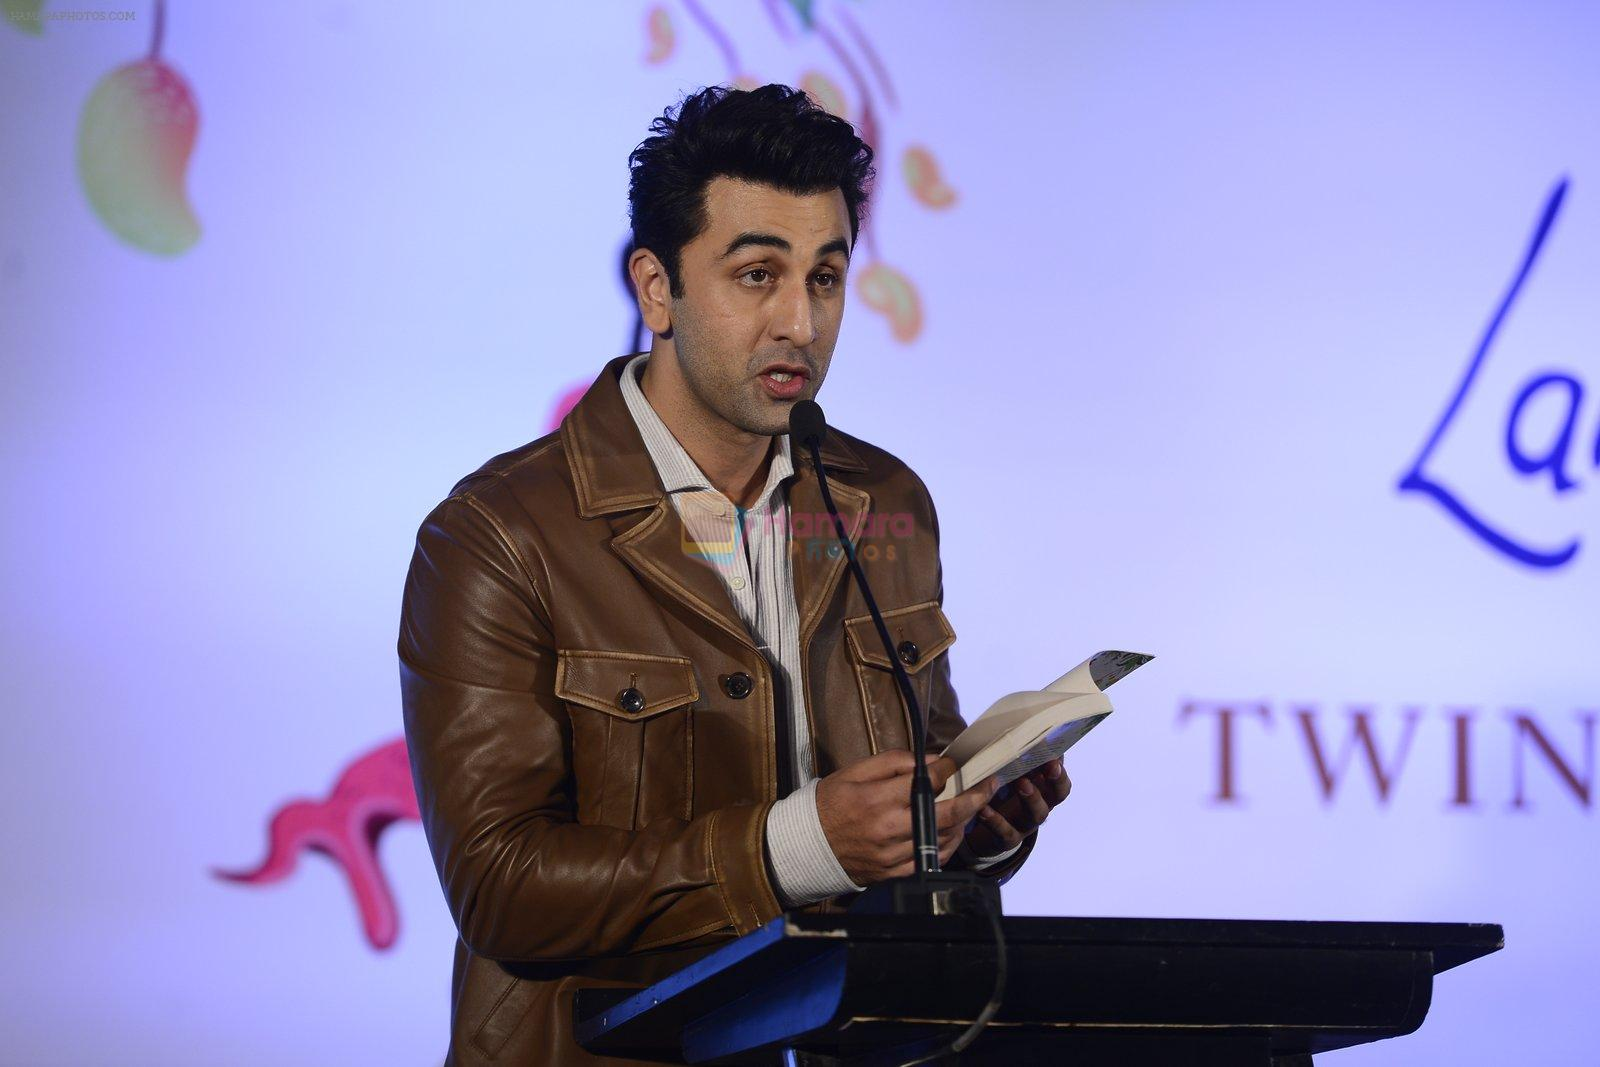 Ranbir Kapoor at Twinkle Khanna's book launch in J W Marriott, Mumbai on 15th Nov 2016